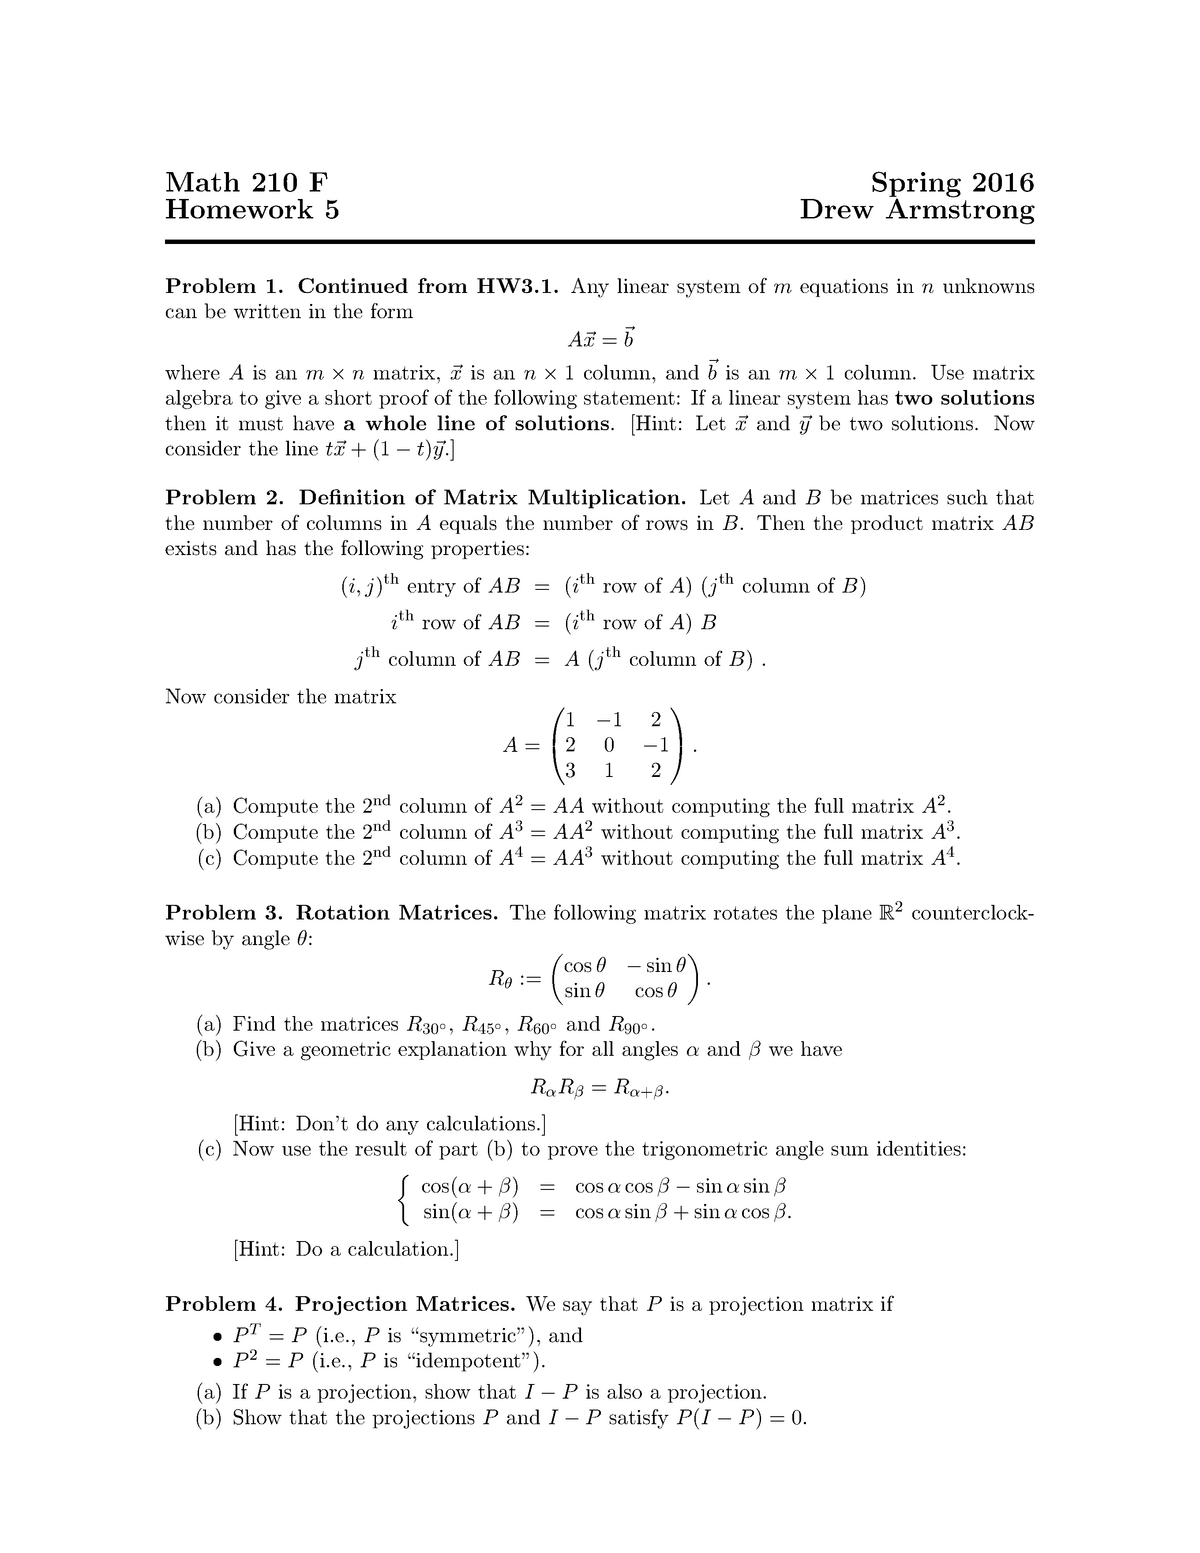 Spring 16, hw 5 - homework - MTH 210: Introduction To Linear